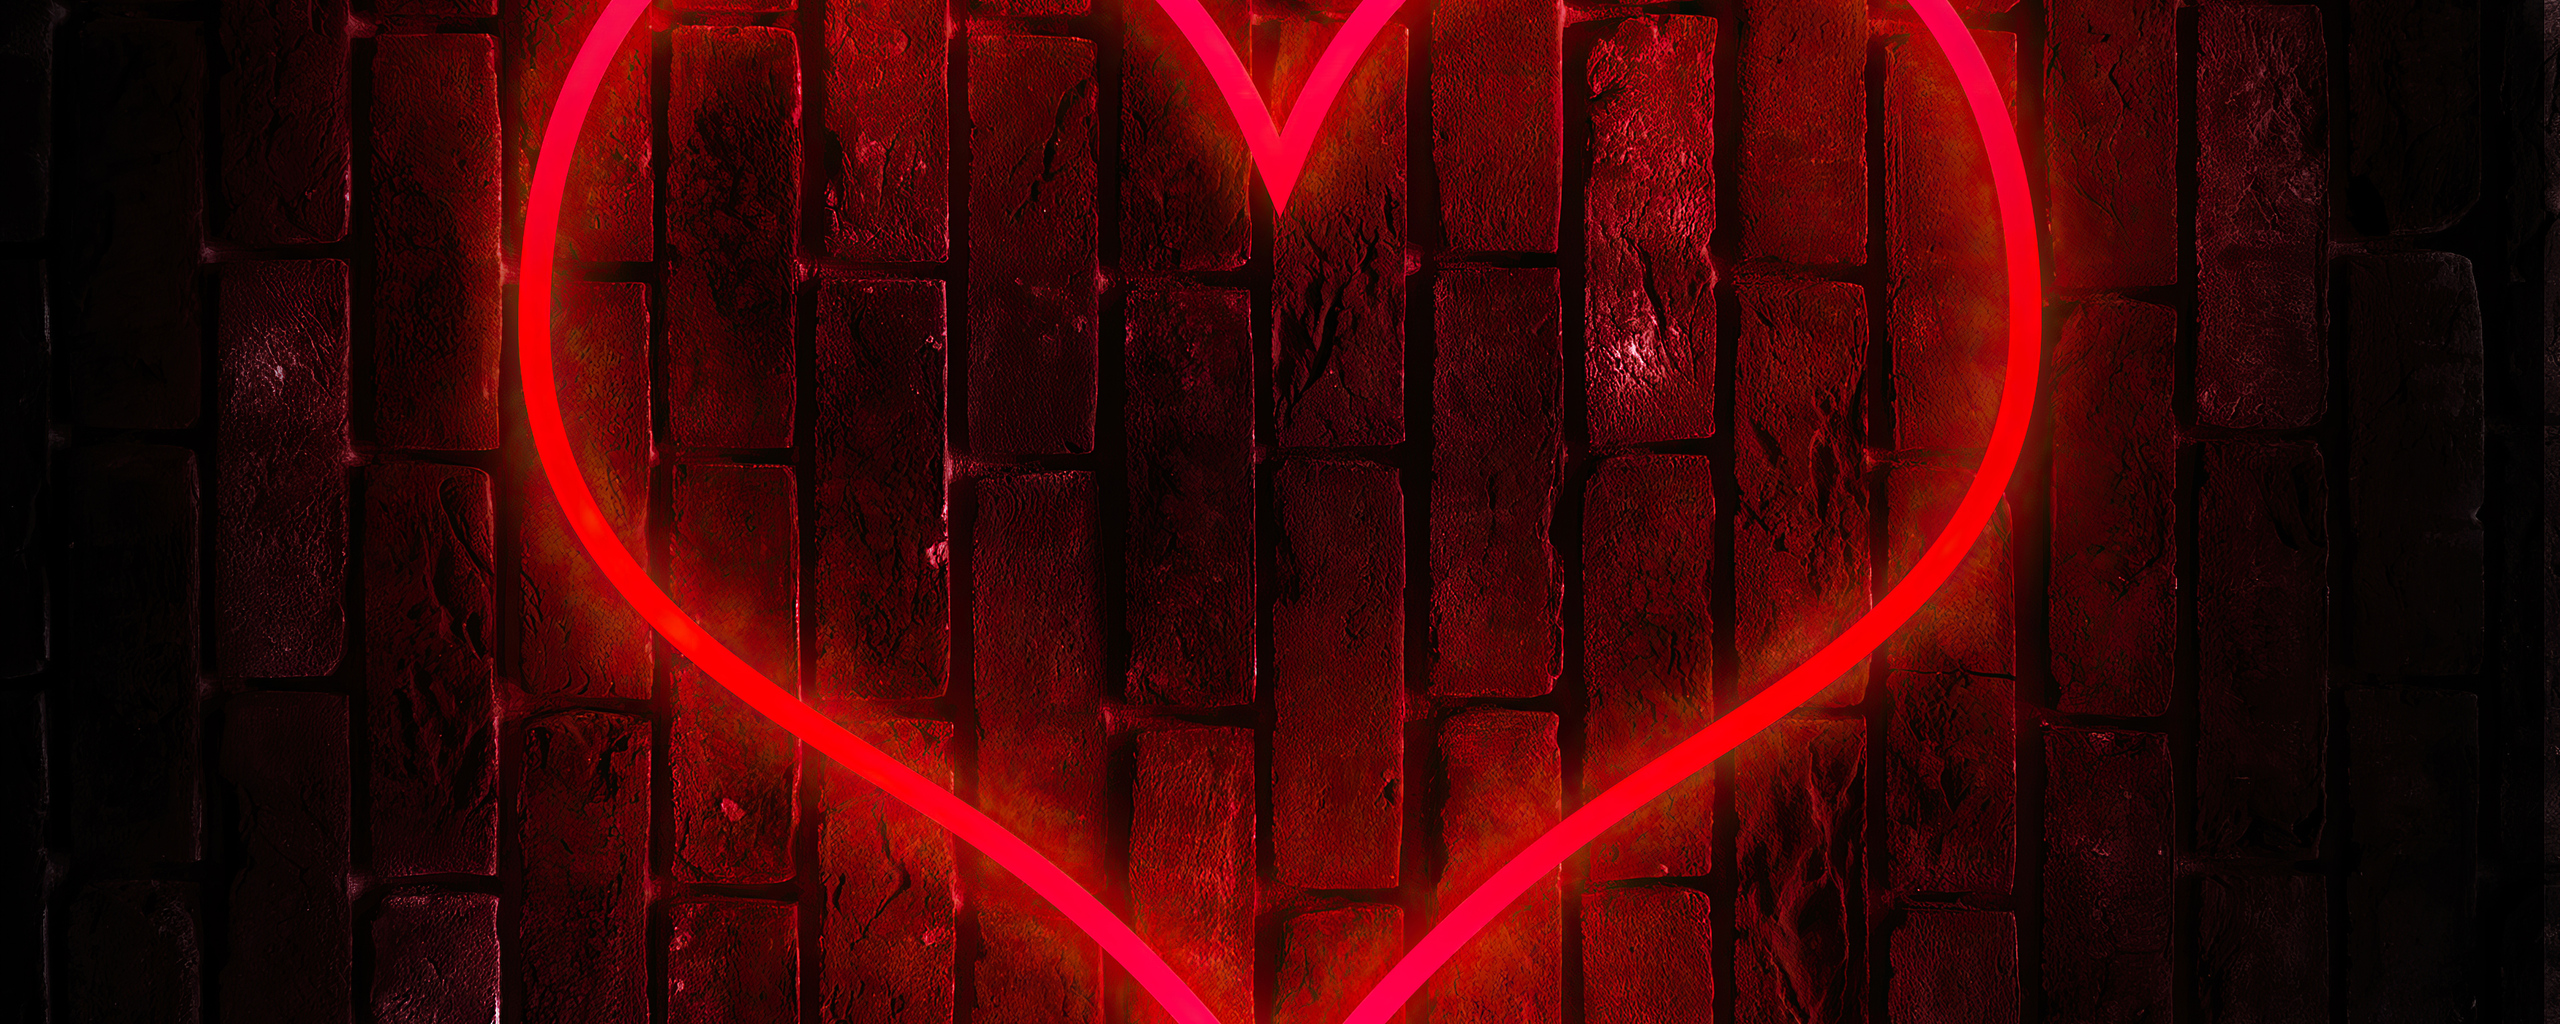 heart-on-tile-wall-hd-rl.jpg